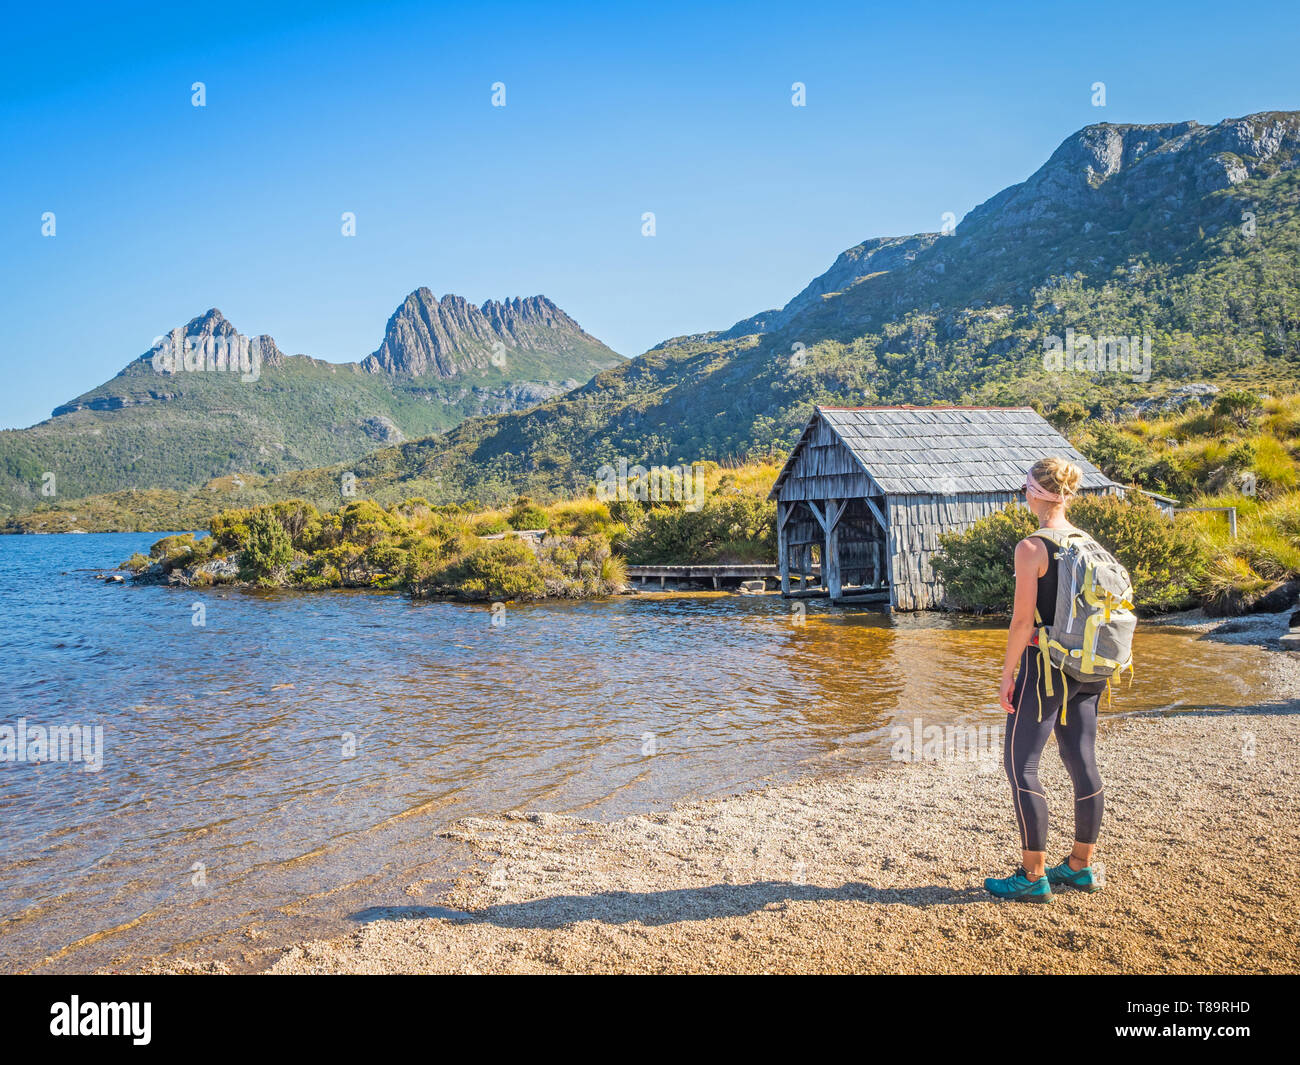 An unidentified female hiker looks at the boathouse at Dove Lake in the Cradle Mountain - Lake St Clair National Park in Tasmania. Stock Photo